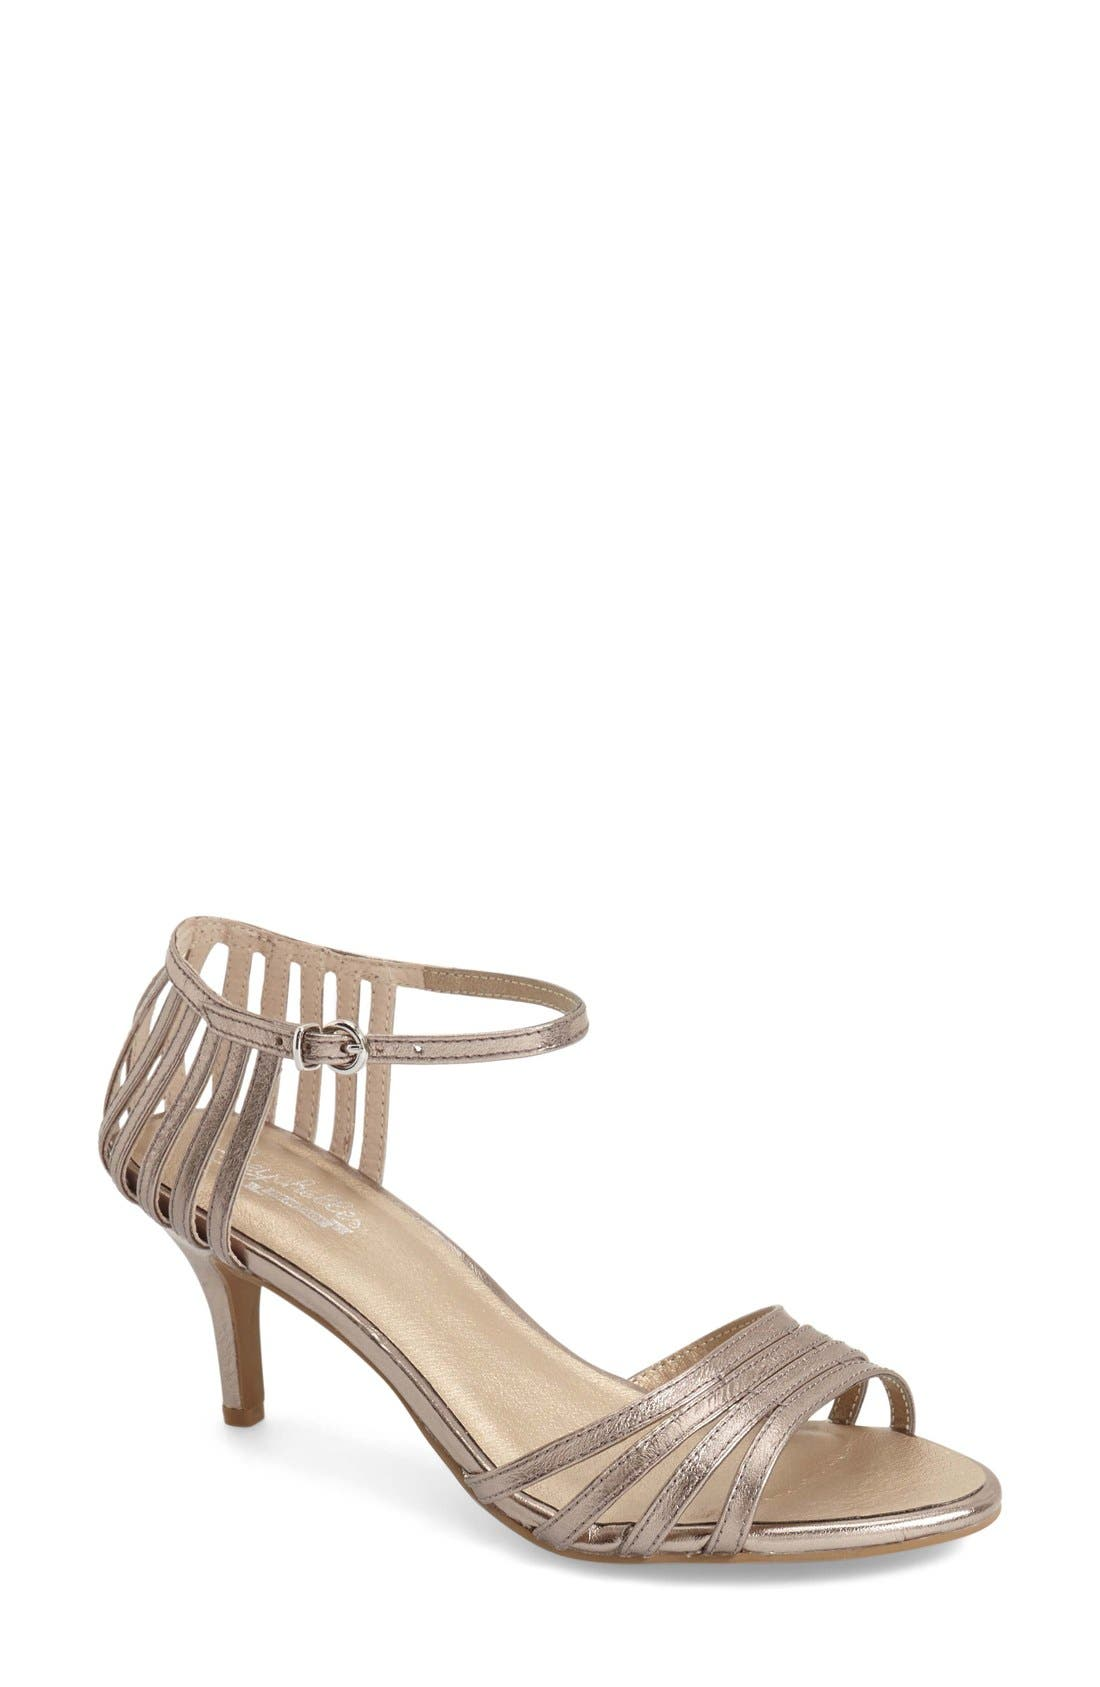 'Song and Dance' Ankle Strap Pump,                         Main,                         color, Pewter Leather